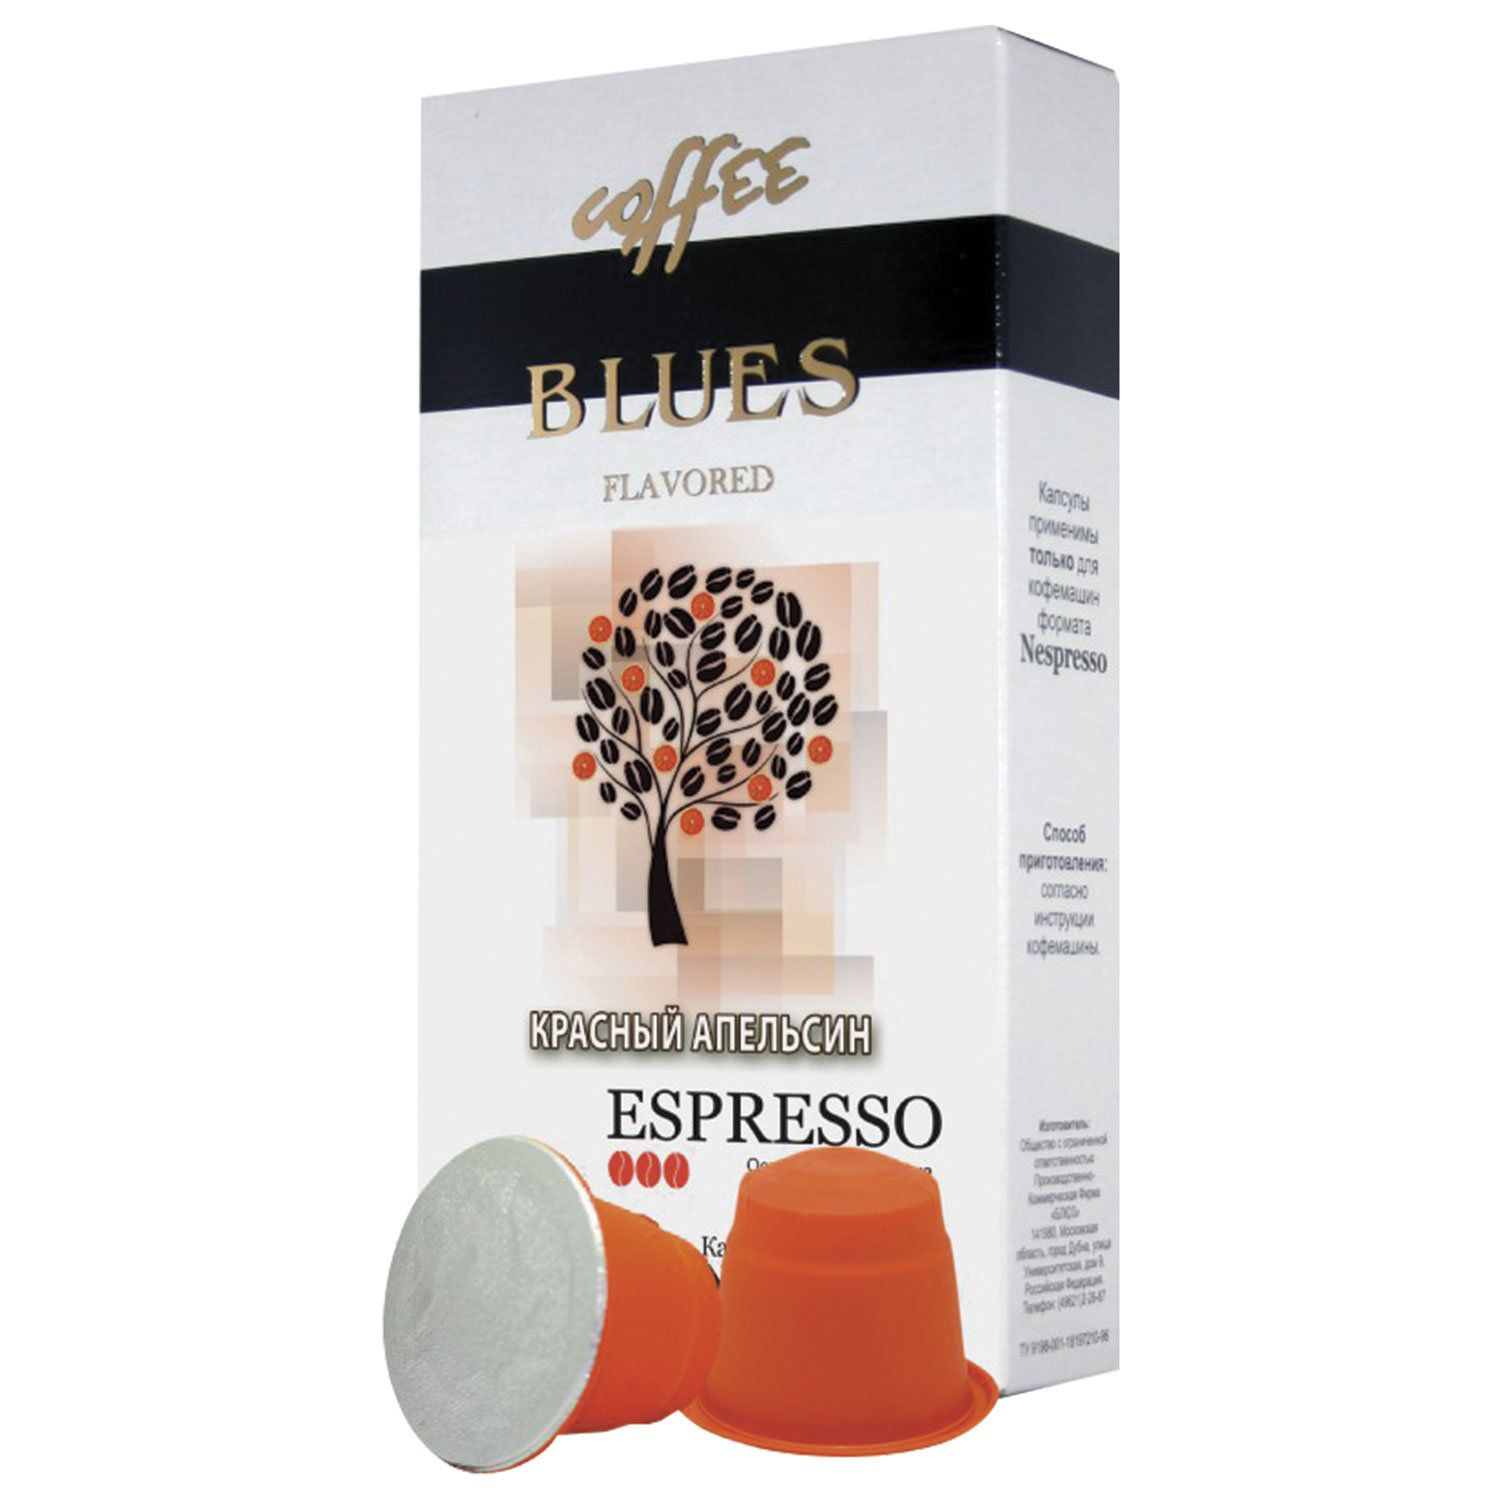 """NESPRESSO / Capsules for coffee machines """"Red Orange"""", natural coffee, BLUES, 10 pcs. x 5 g"""